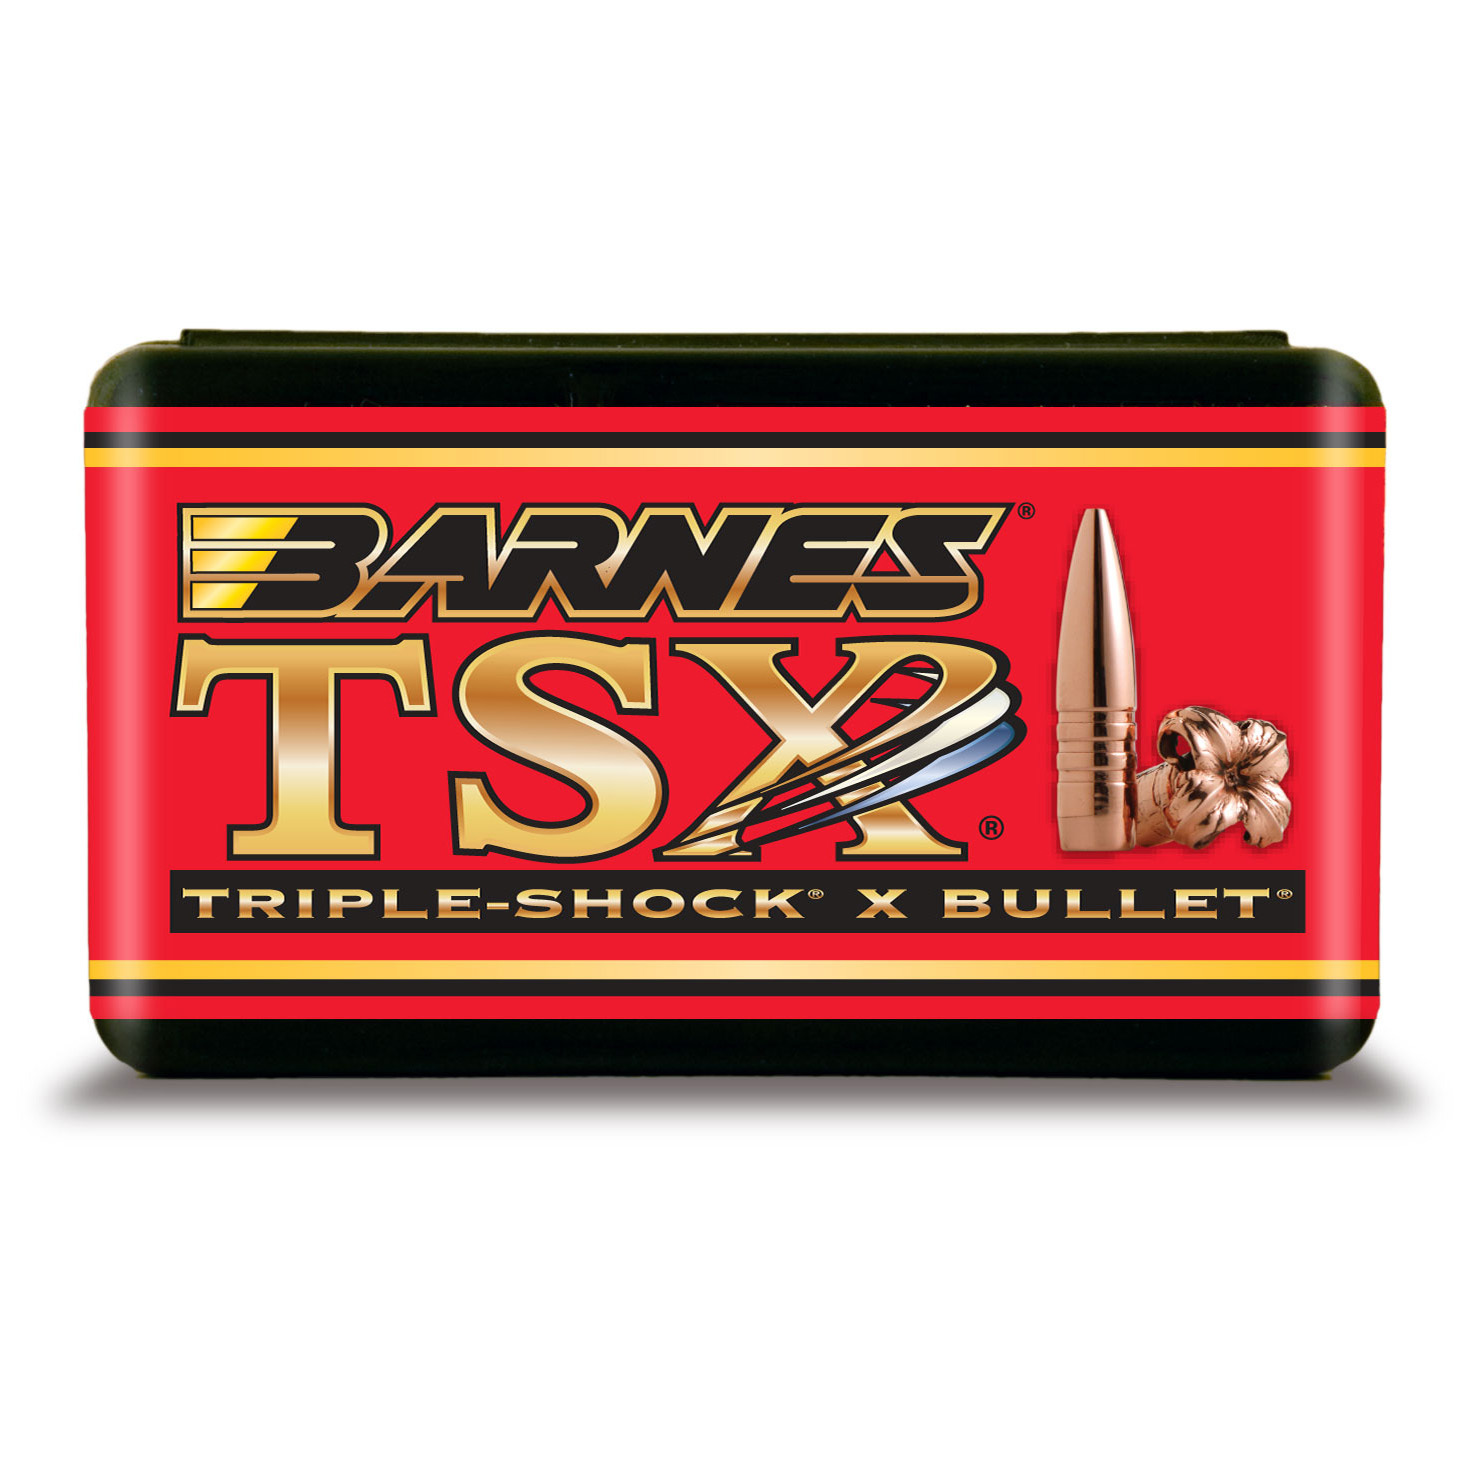 "50-Pk. Barnes .338 185-grain TSX Triple Shock X BT Reloading Bullets. ""X"" marks the spot for superior performance. Barnes' most popular hunting Bullet! The TSX has gained worldwide recognition as one of the deadliest, most dependable all-copper Bullets you can buy. Try these and realize the added benefits of improved accuracy, reduced barrel fouling and increased velocity.Specs:Caliber: .338 Bullet diameter: .338"" Bullet weight: 185 grains Bullet length: 1.228"" Bullet style: Boattail Sectional density: .231 Ballistic coefficient: .352. - $39.99"